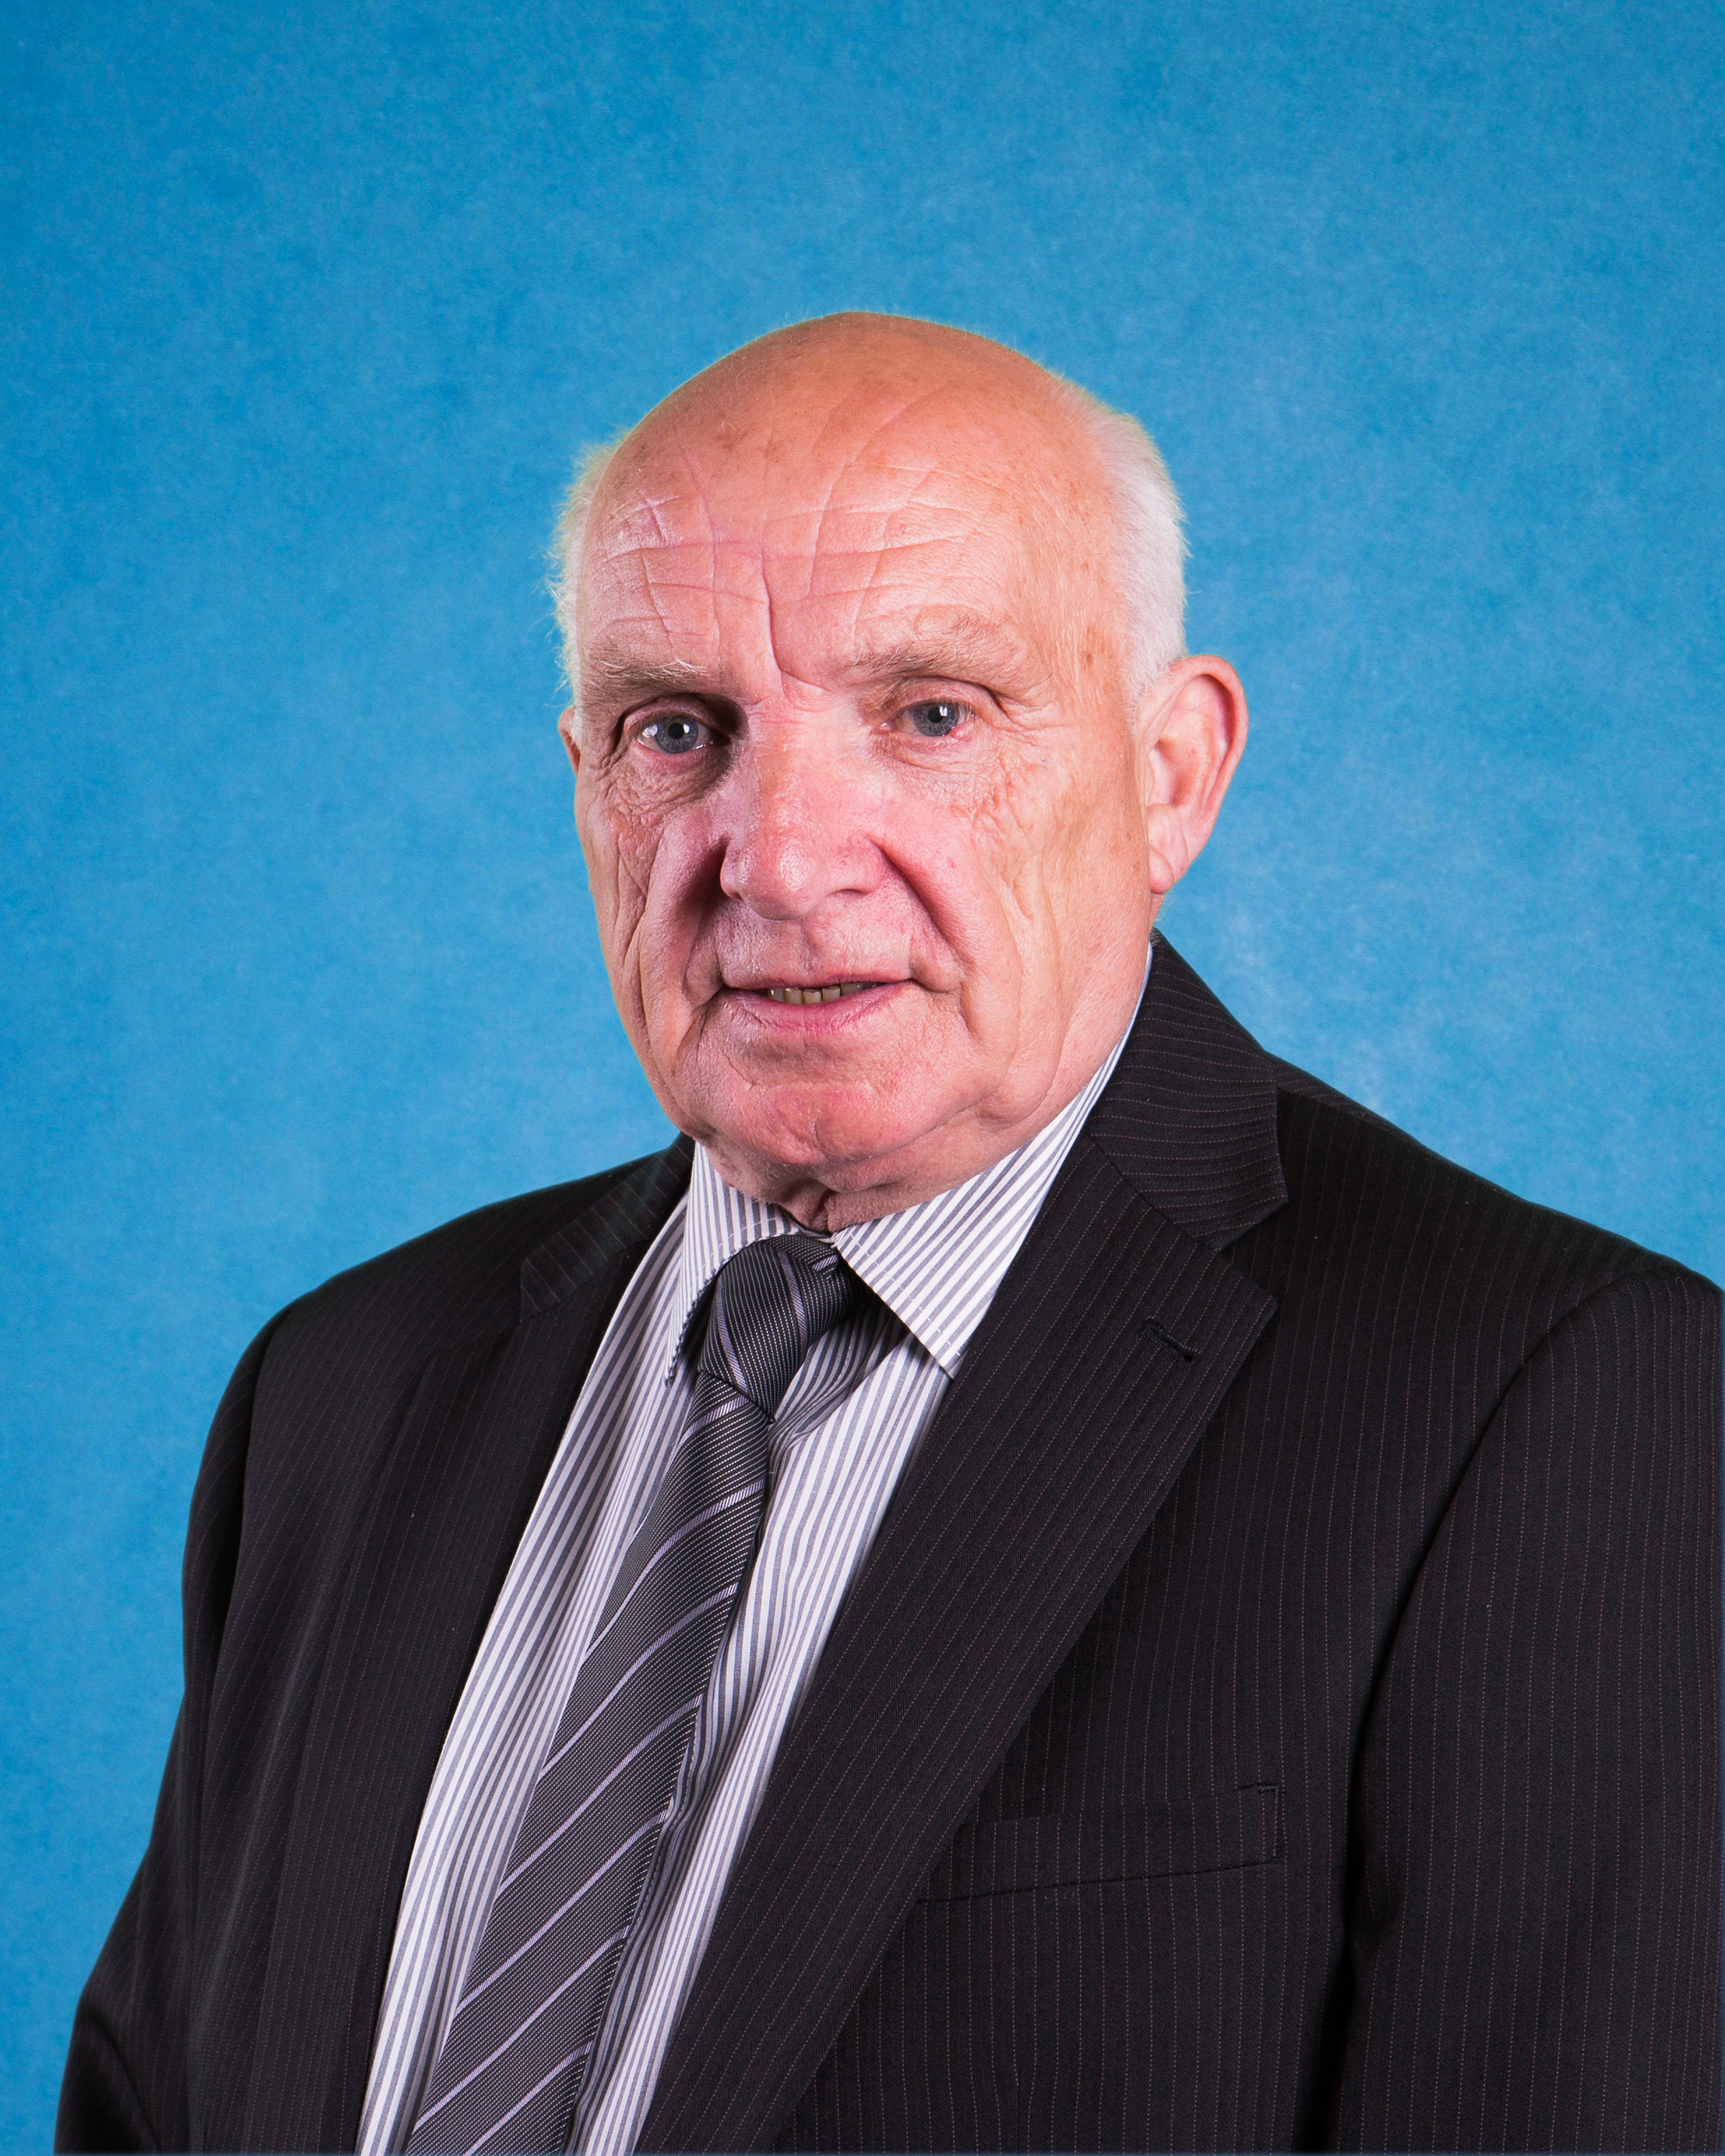 link to details of Councillor Bill Smith